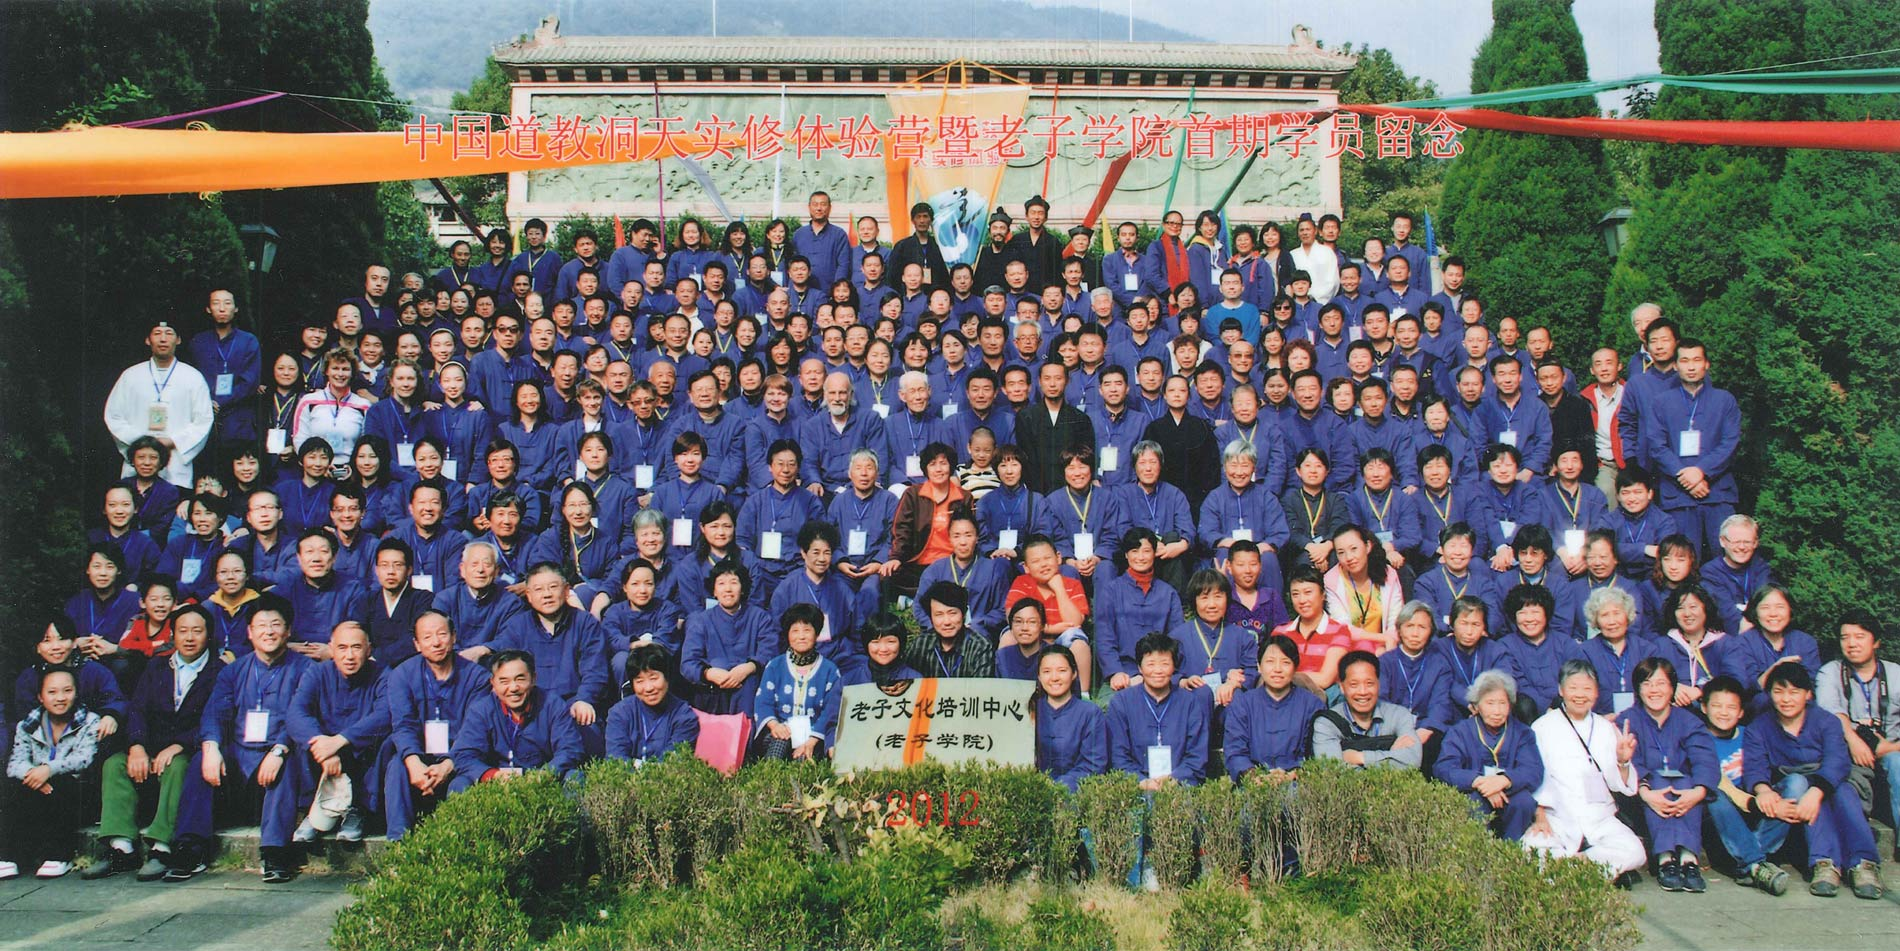 gathering of master Wang LiPing's students at Jin Hua, October 2012